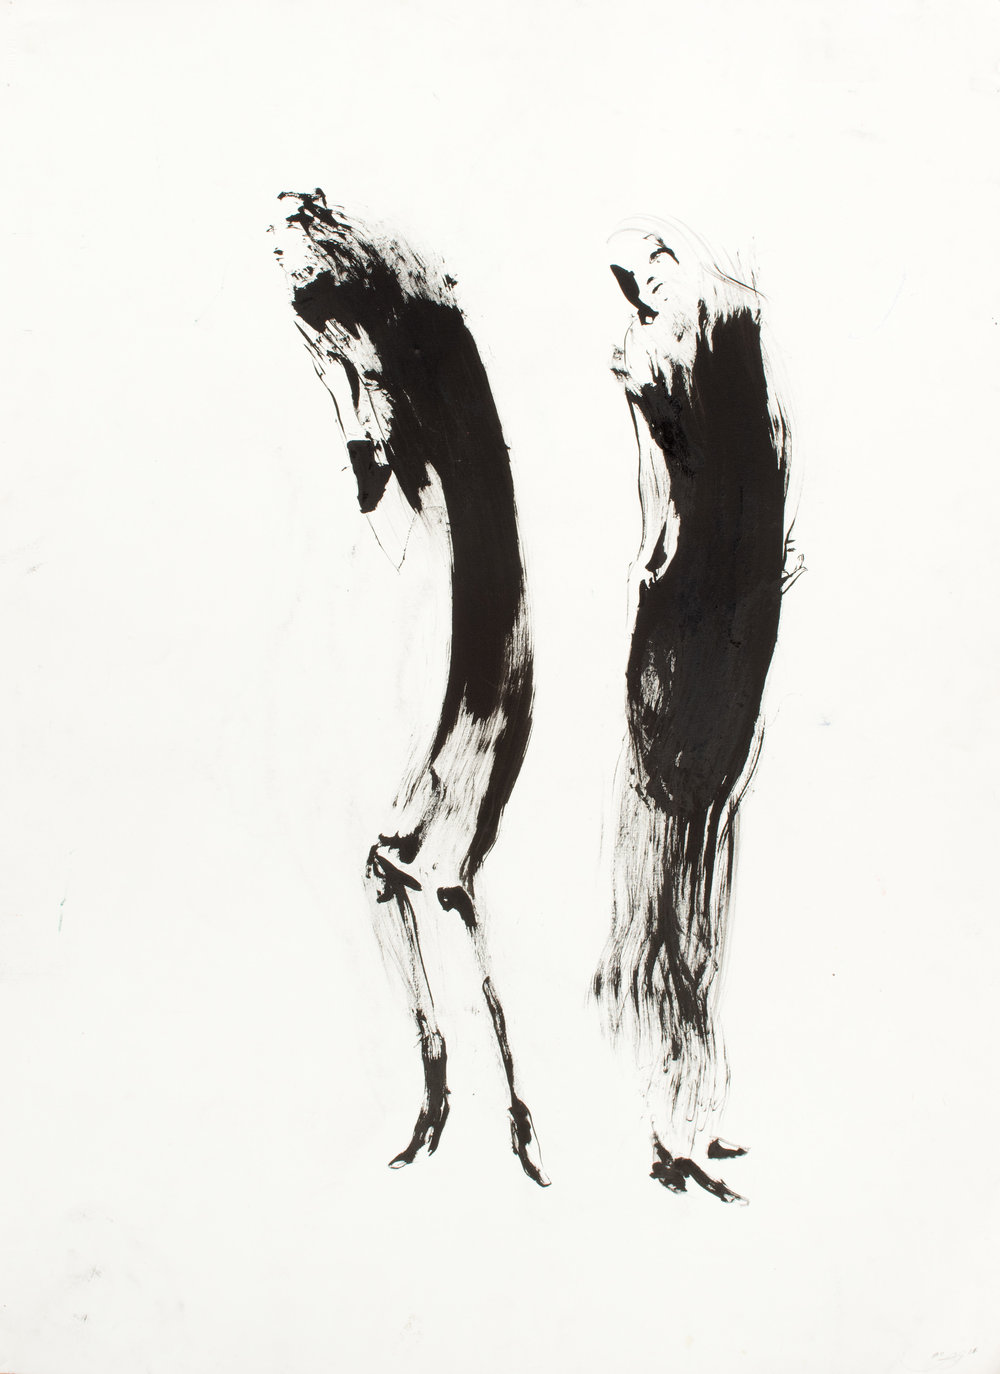 Standby , 2011 Ink on paper 30 x 22 inches